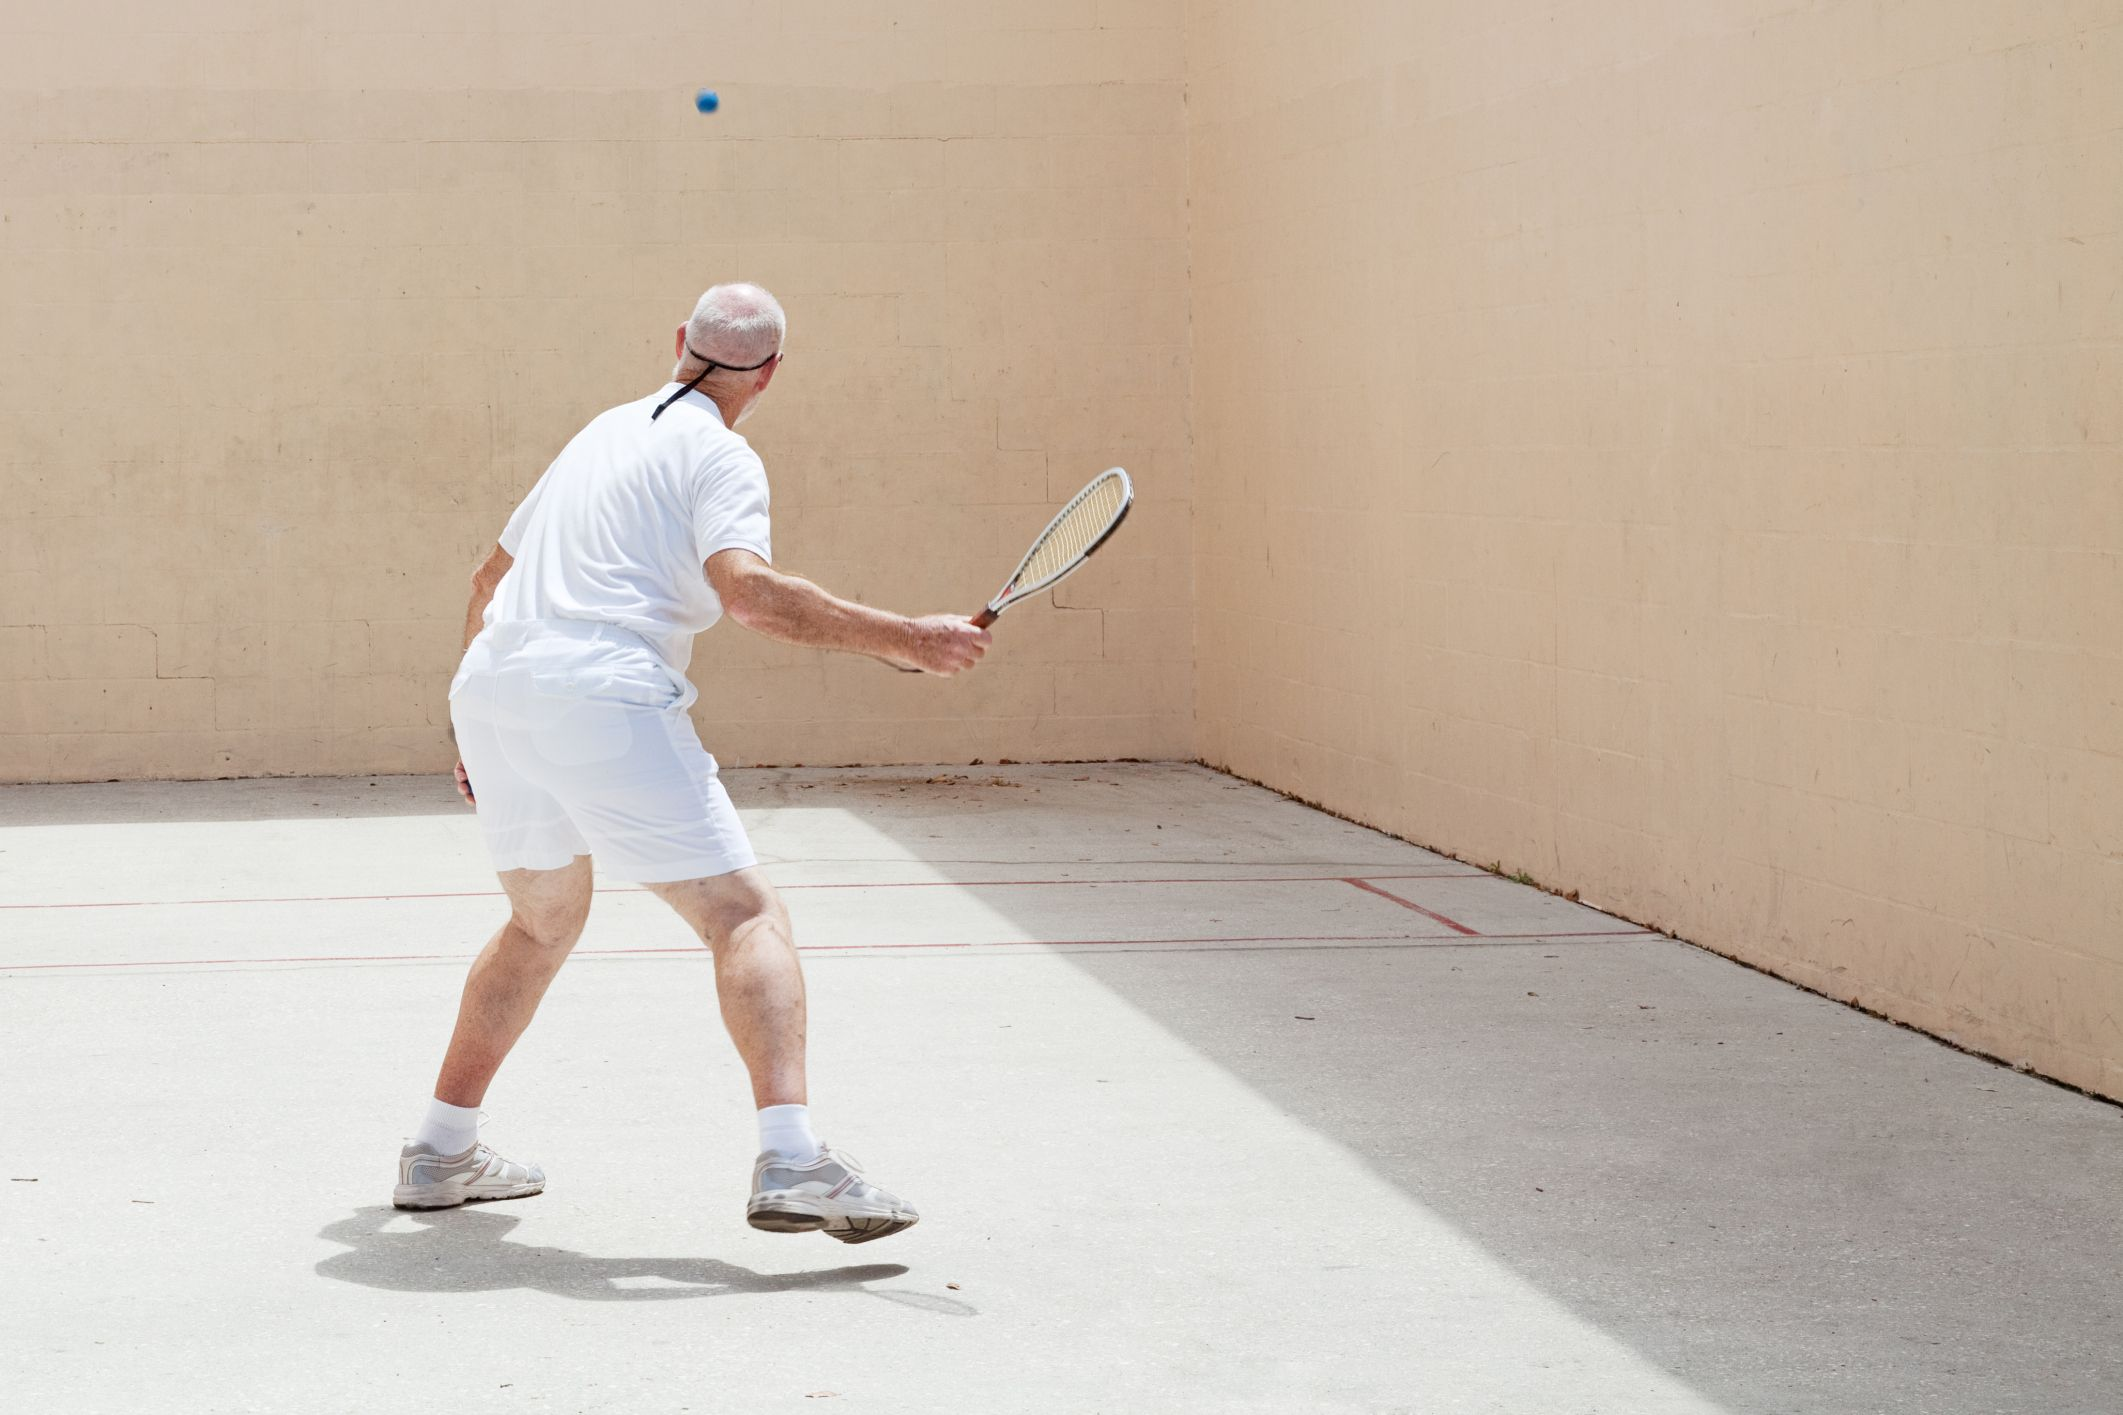 How To Make A Tennis Back Board